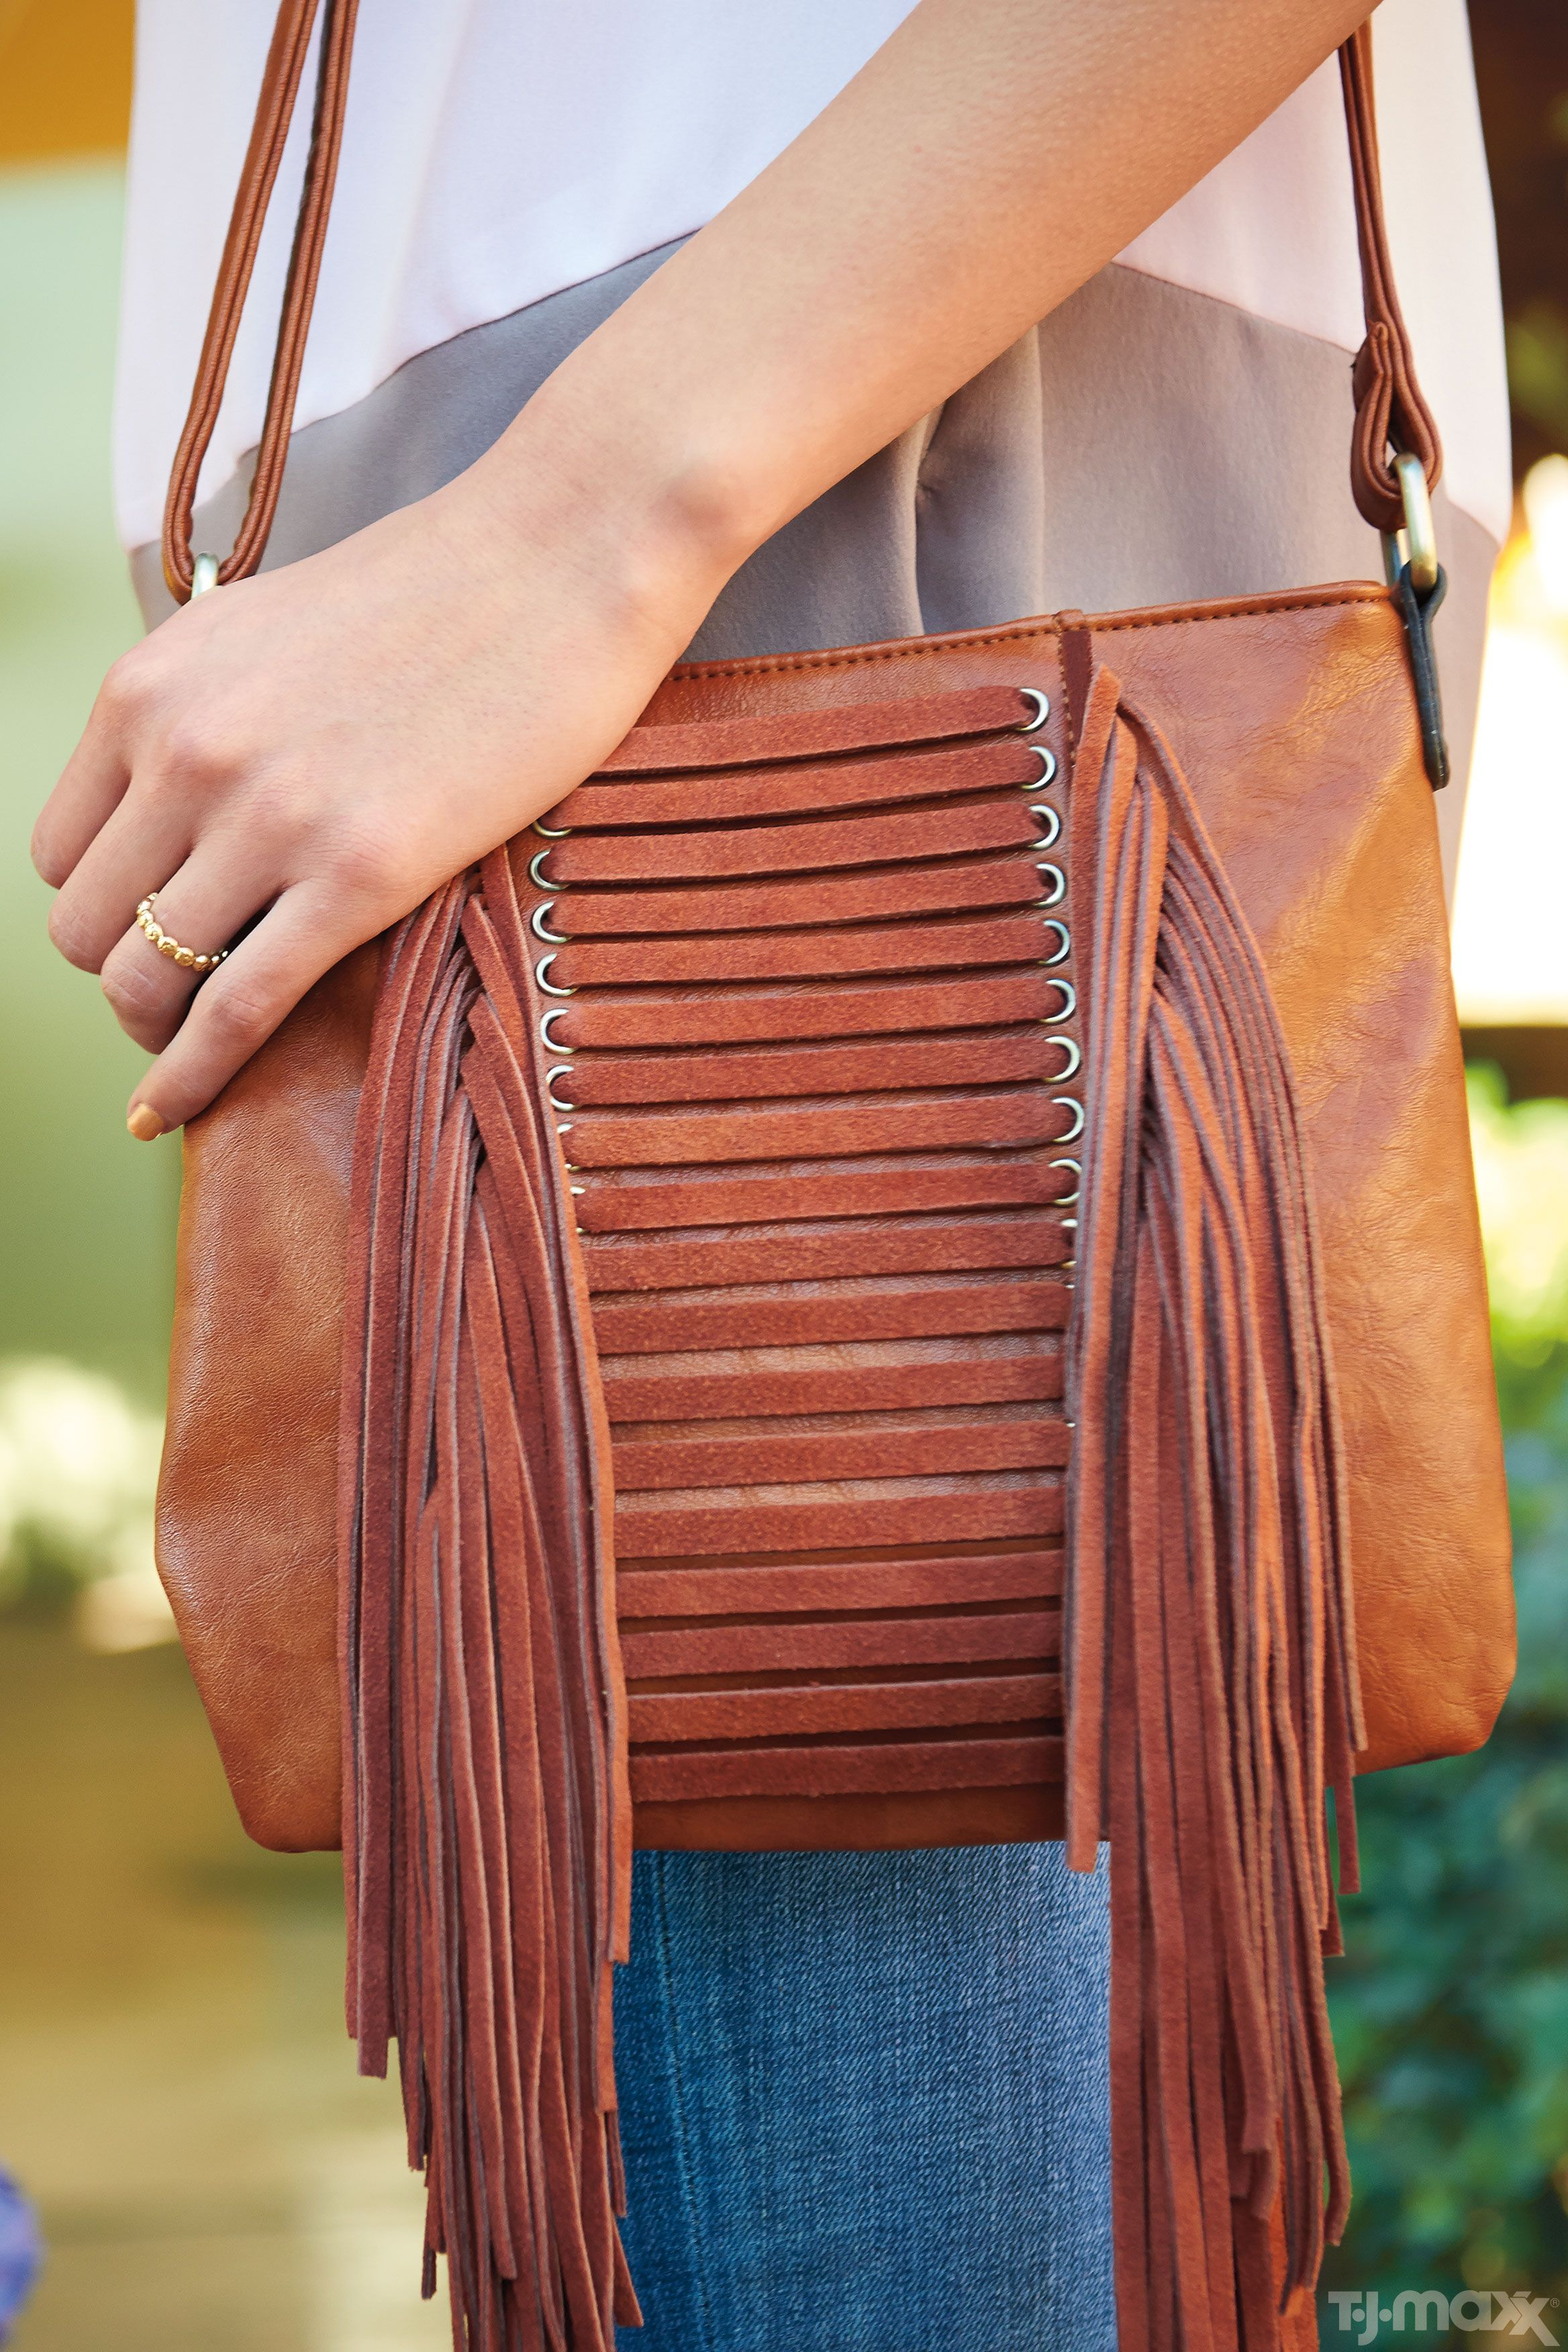 T.J.Maxx truth  You can never have too many great handbags. This fringe  cross-body style adds a boho touch to this silk blouse. c57df3479